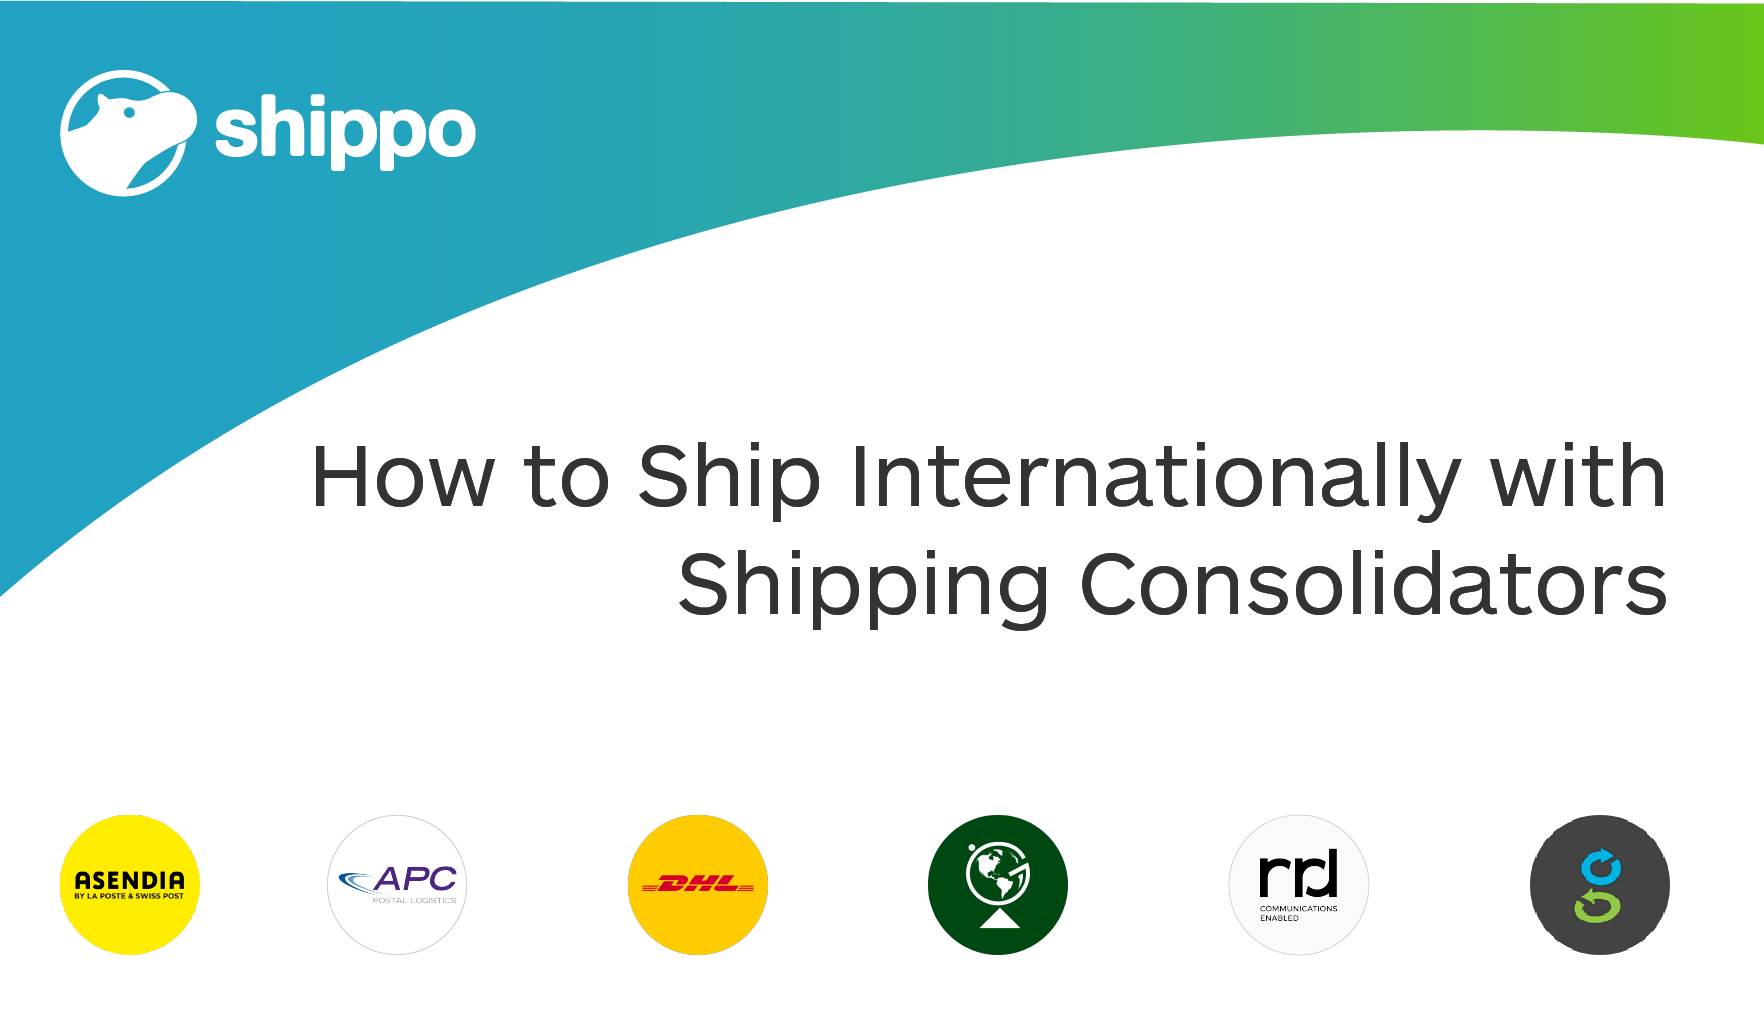 How to Ship Internationally with Shipping Consolidators